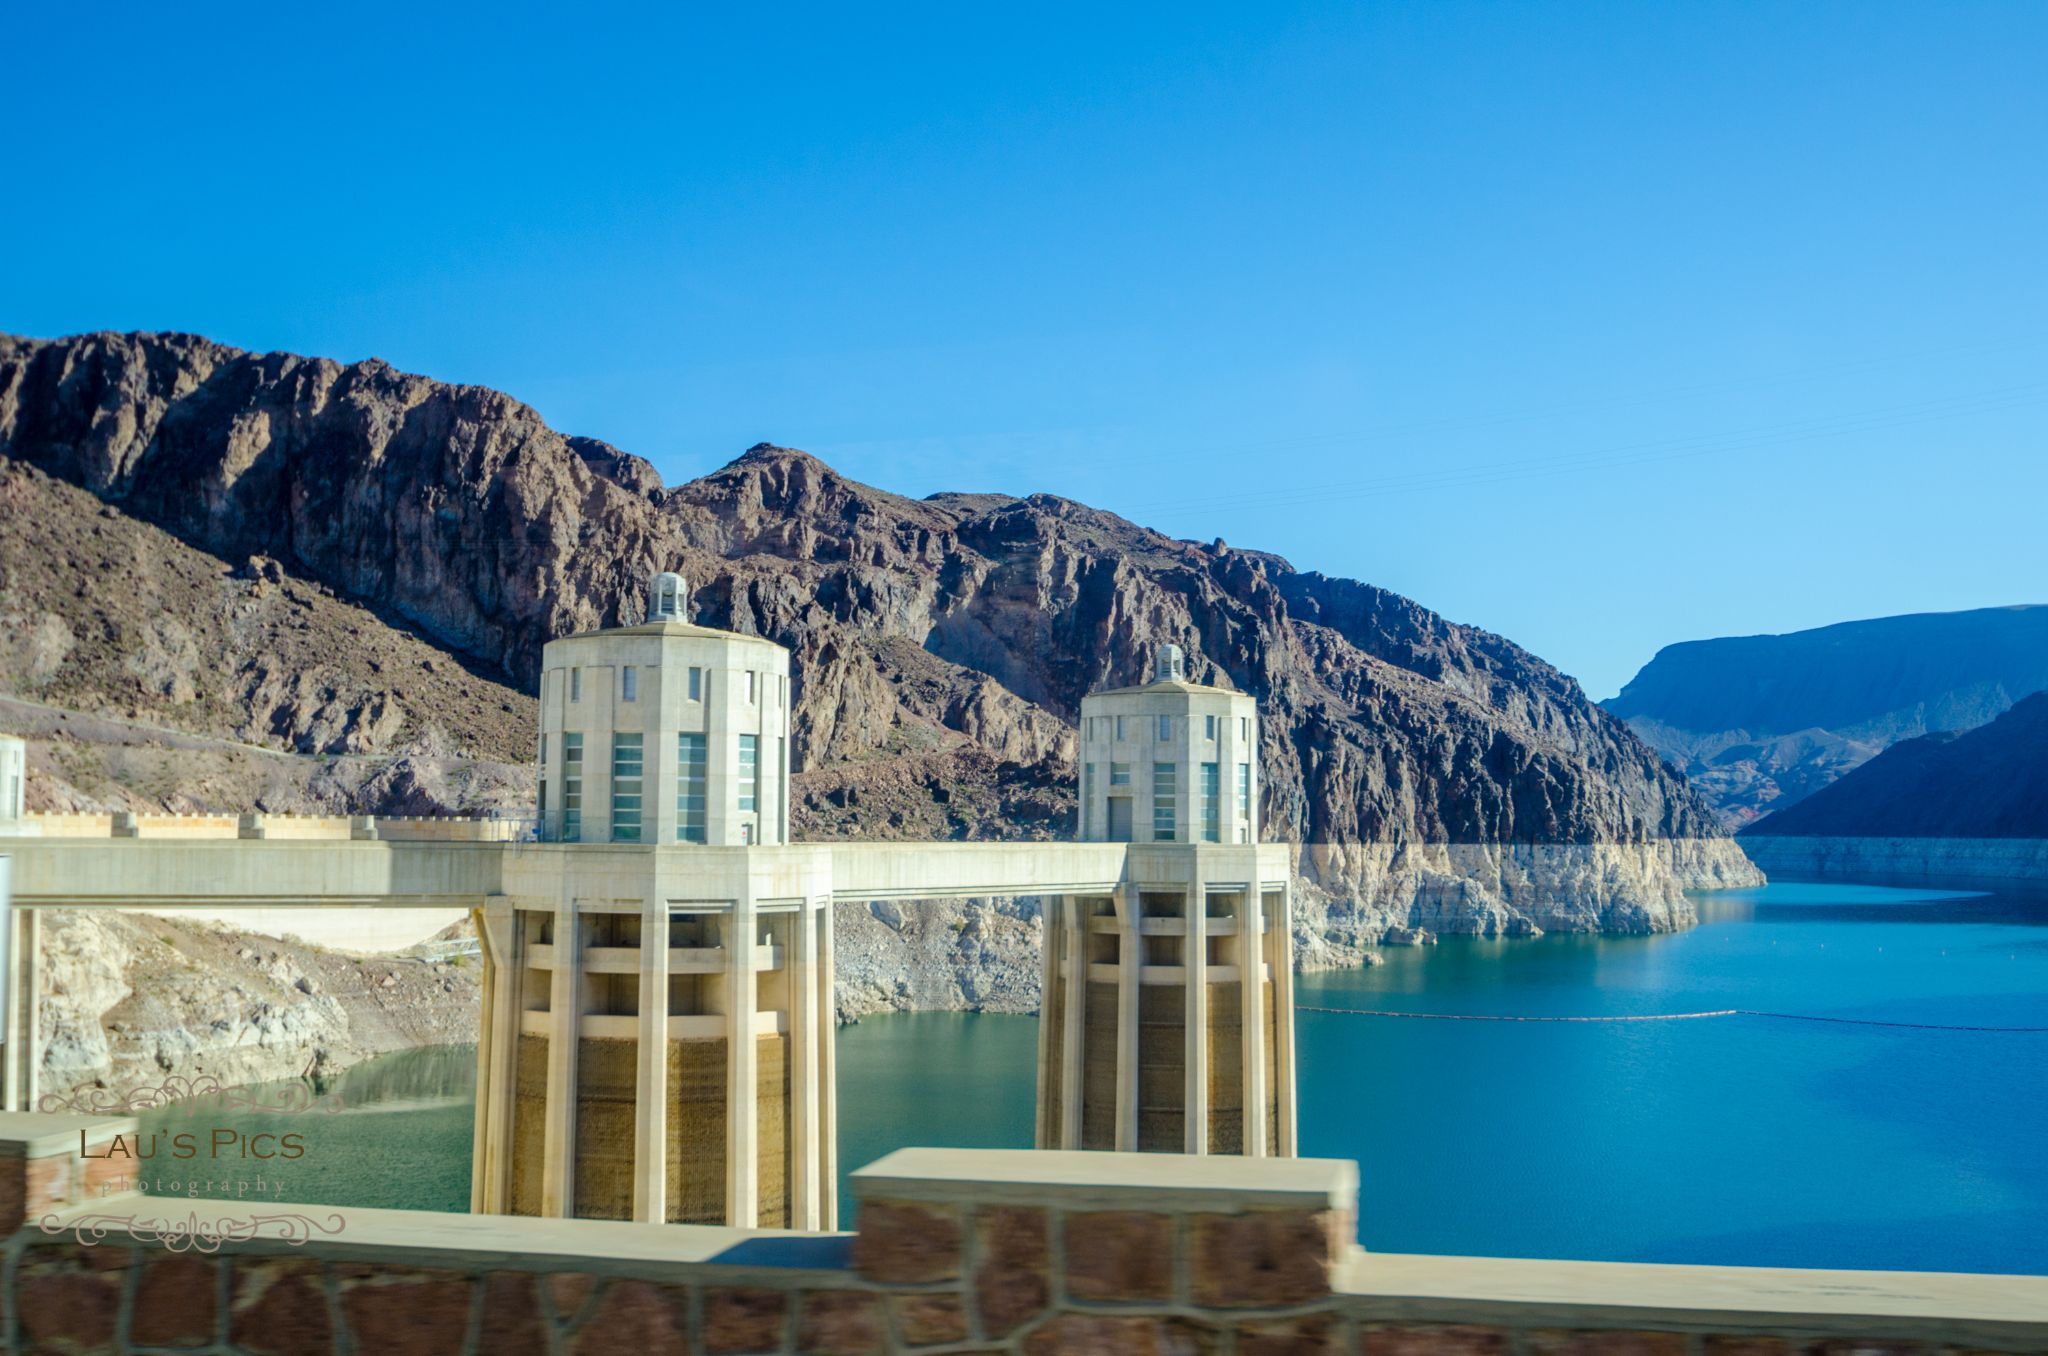 Colorado River at Hoover Dam by lauspics